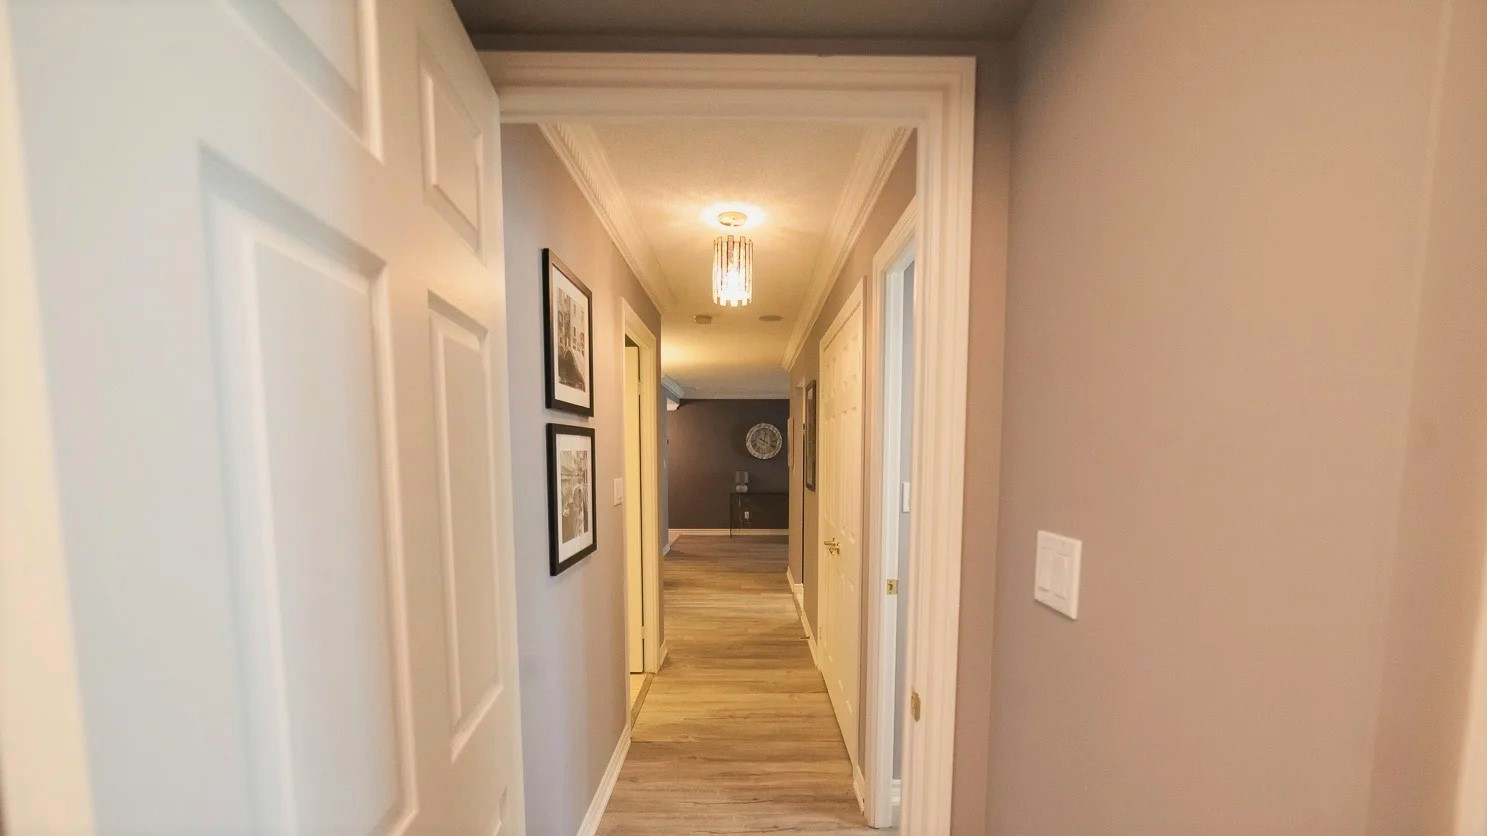 168 Simcoe foyer with new laminate floors and framed photos on walls.